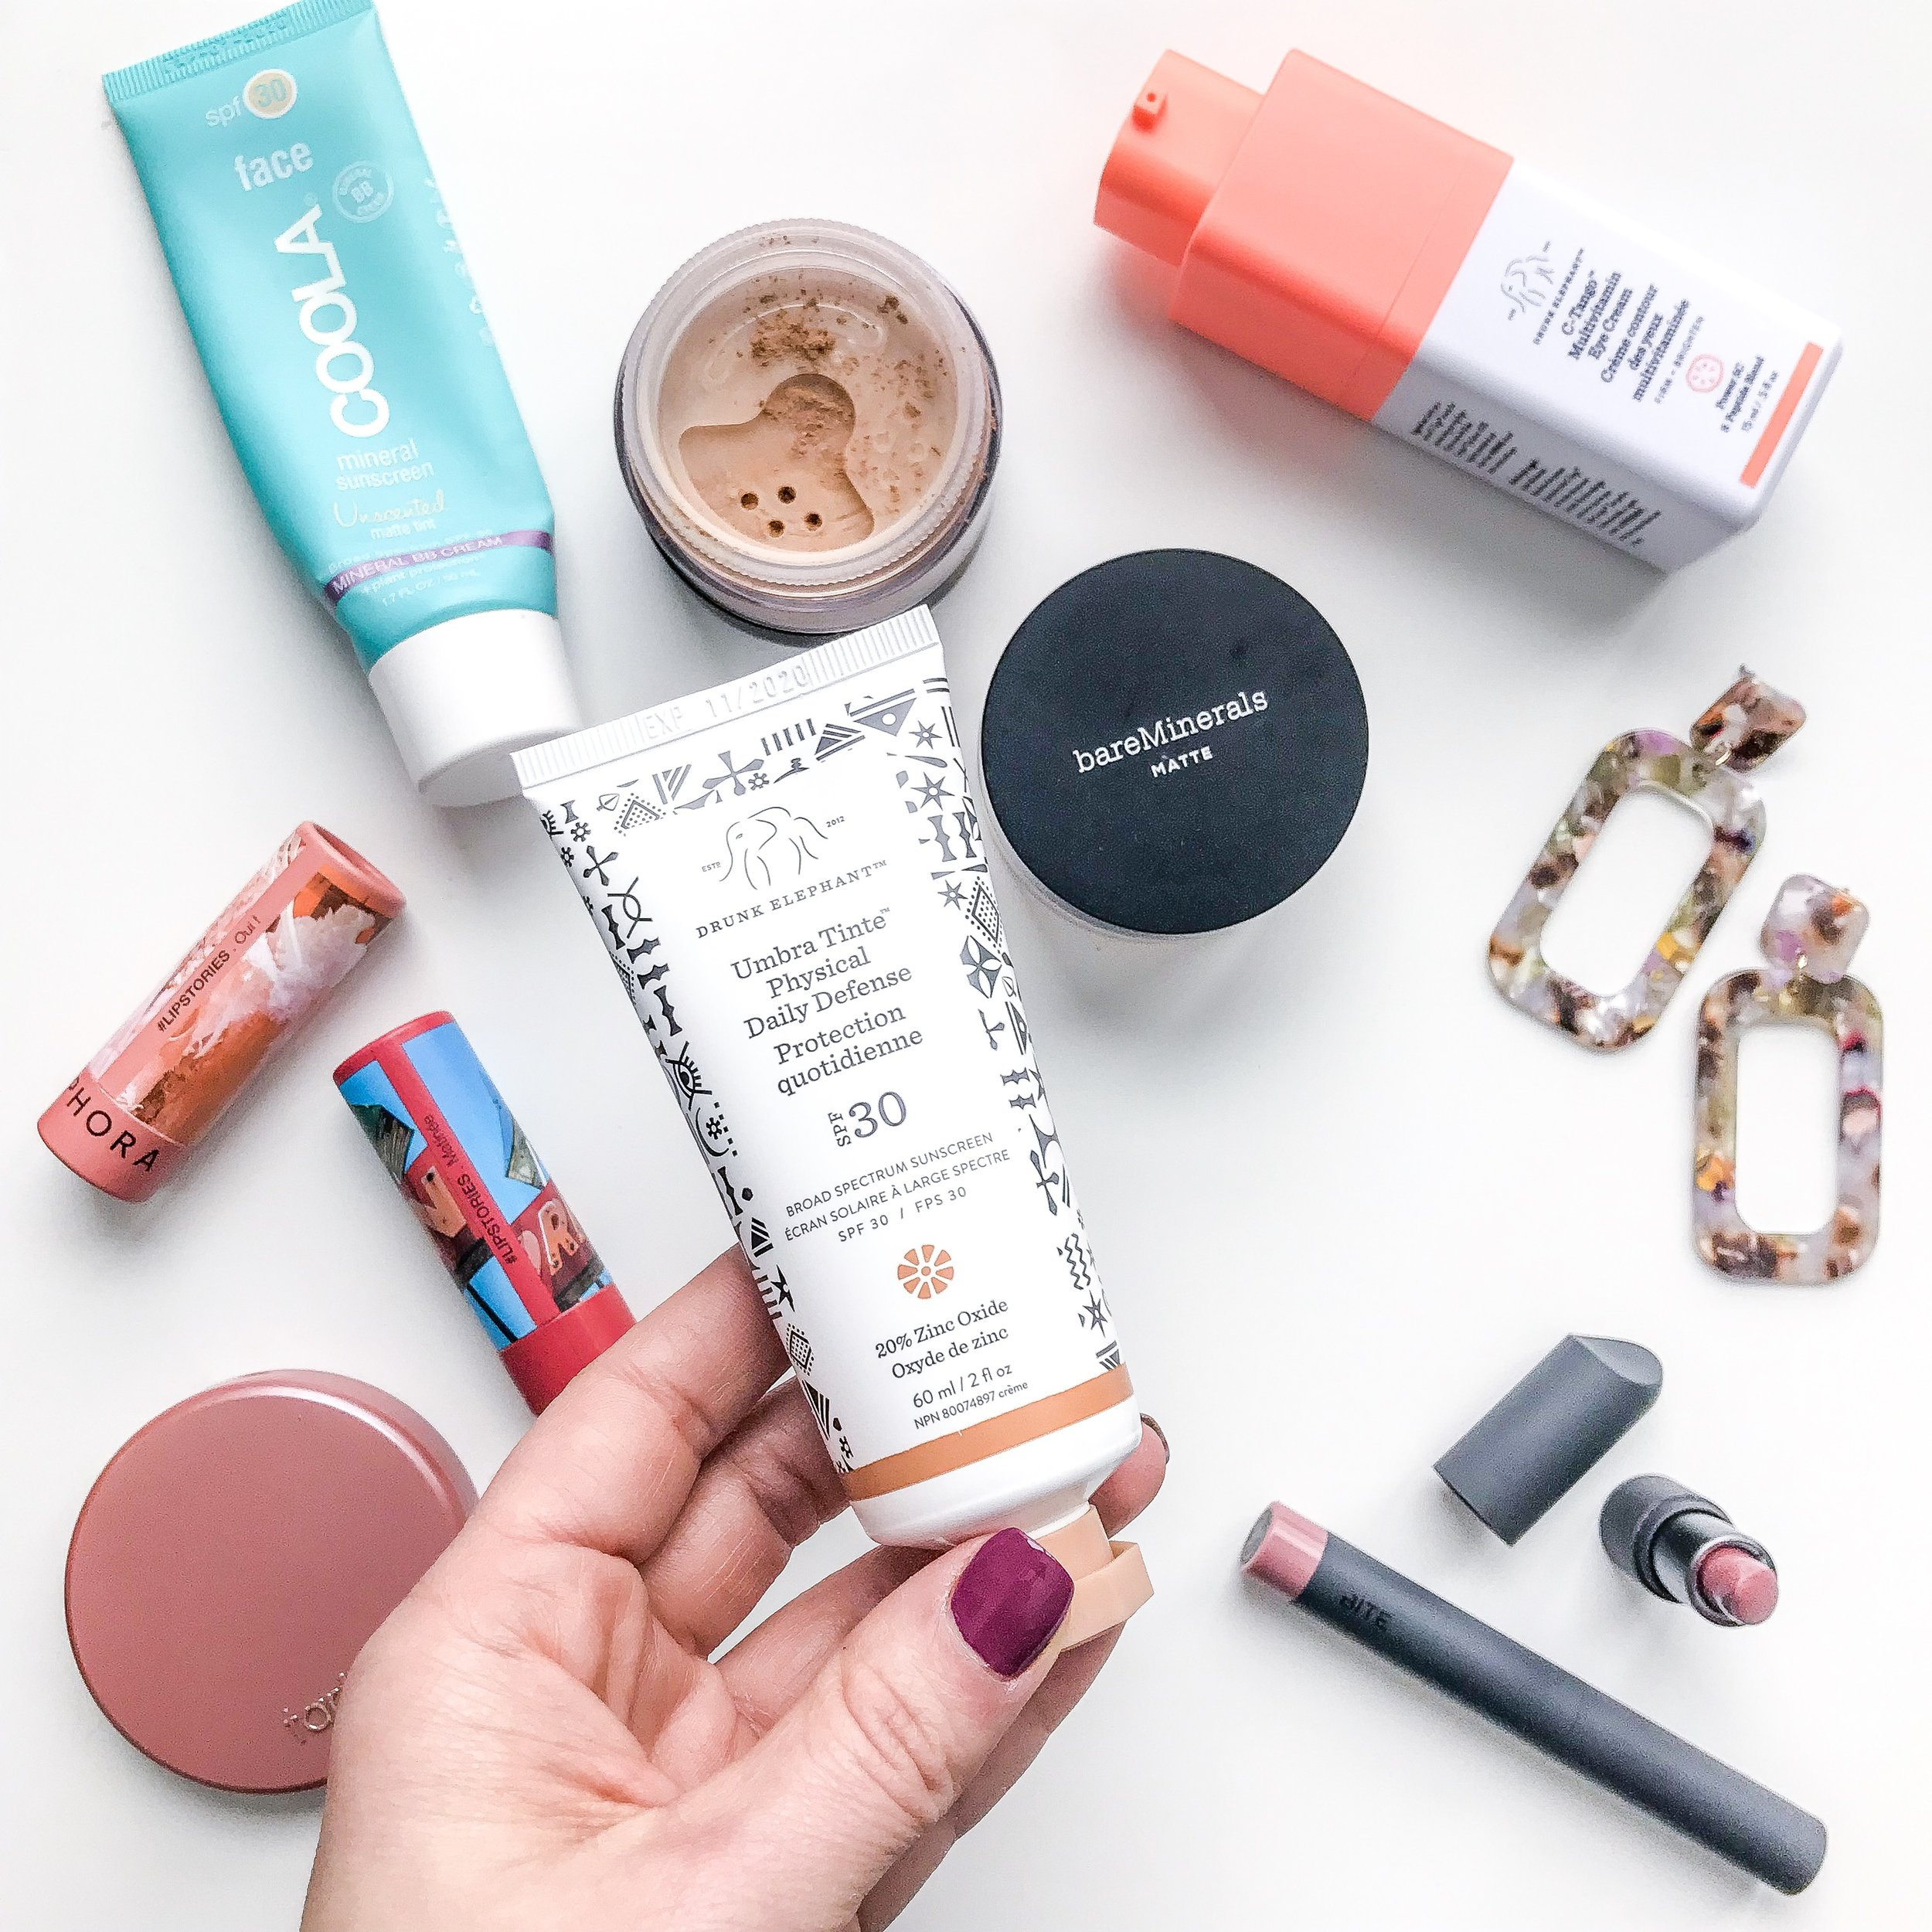 My Go-To Products from Sephora -- The Life She Wanders